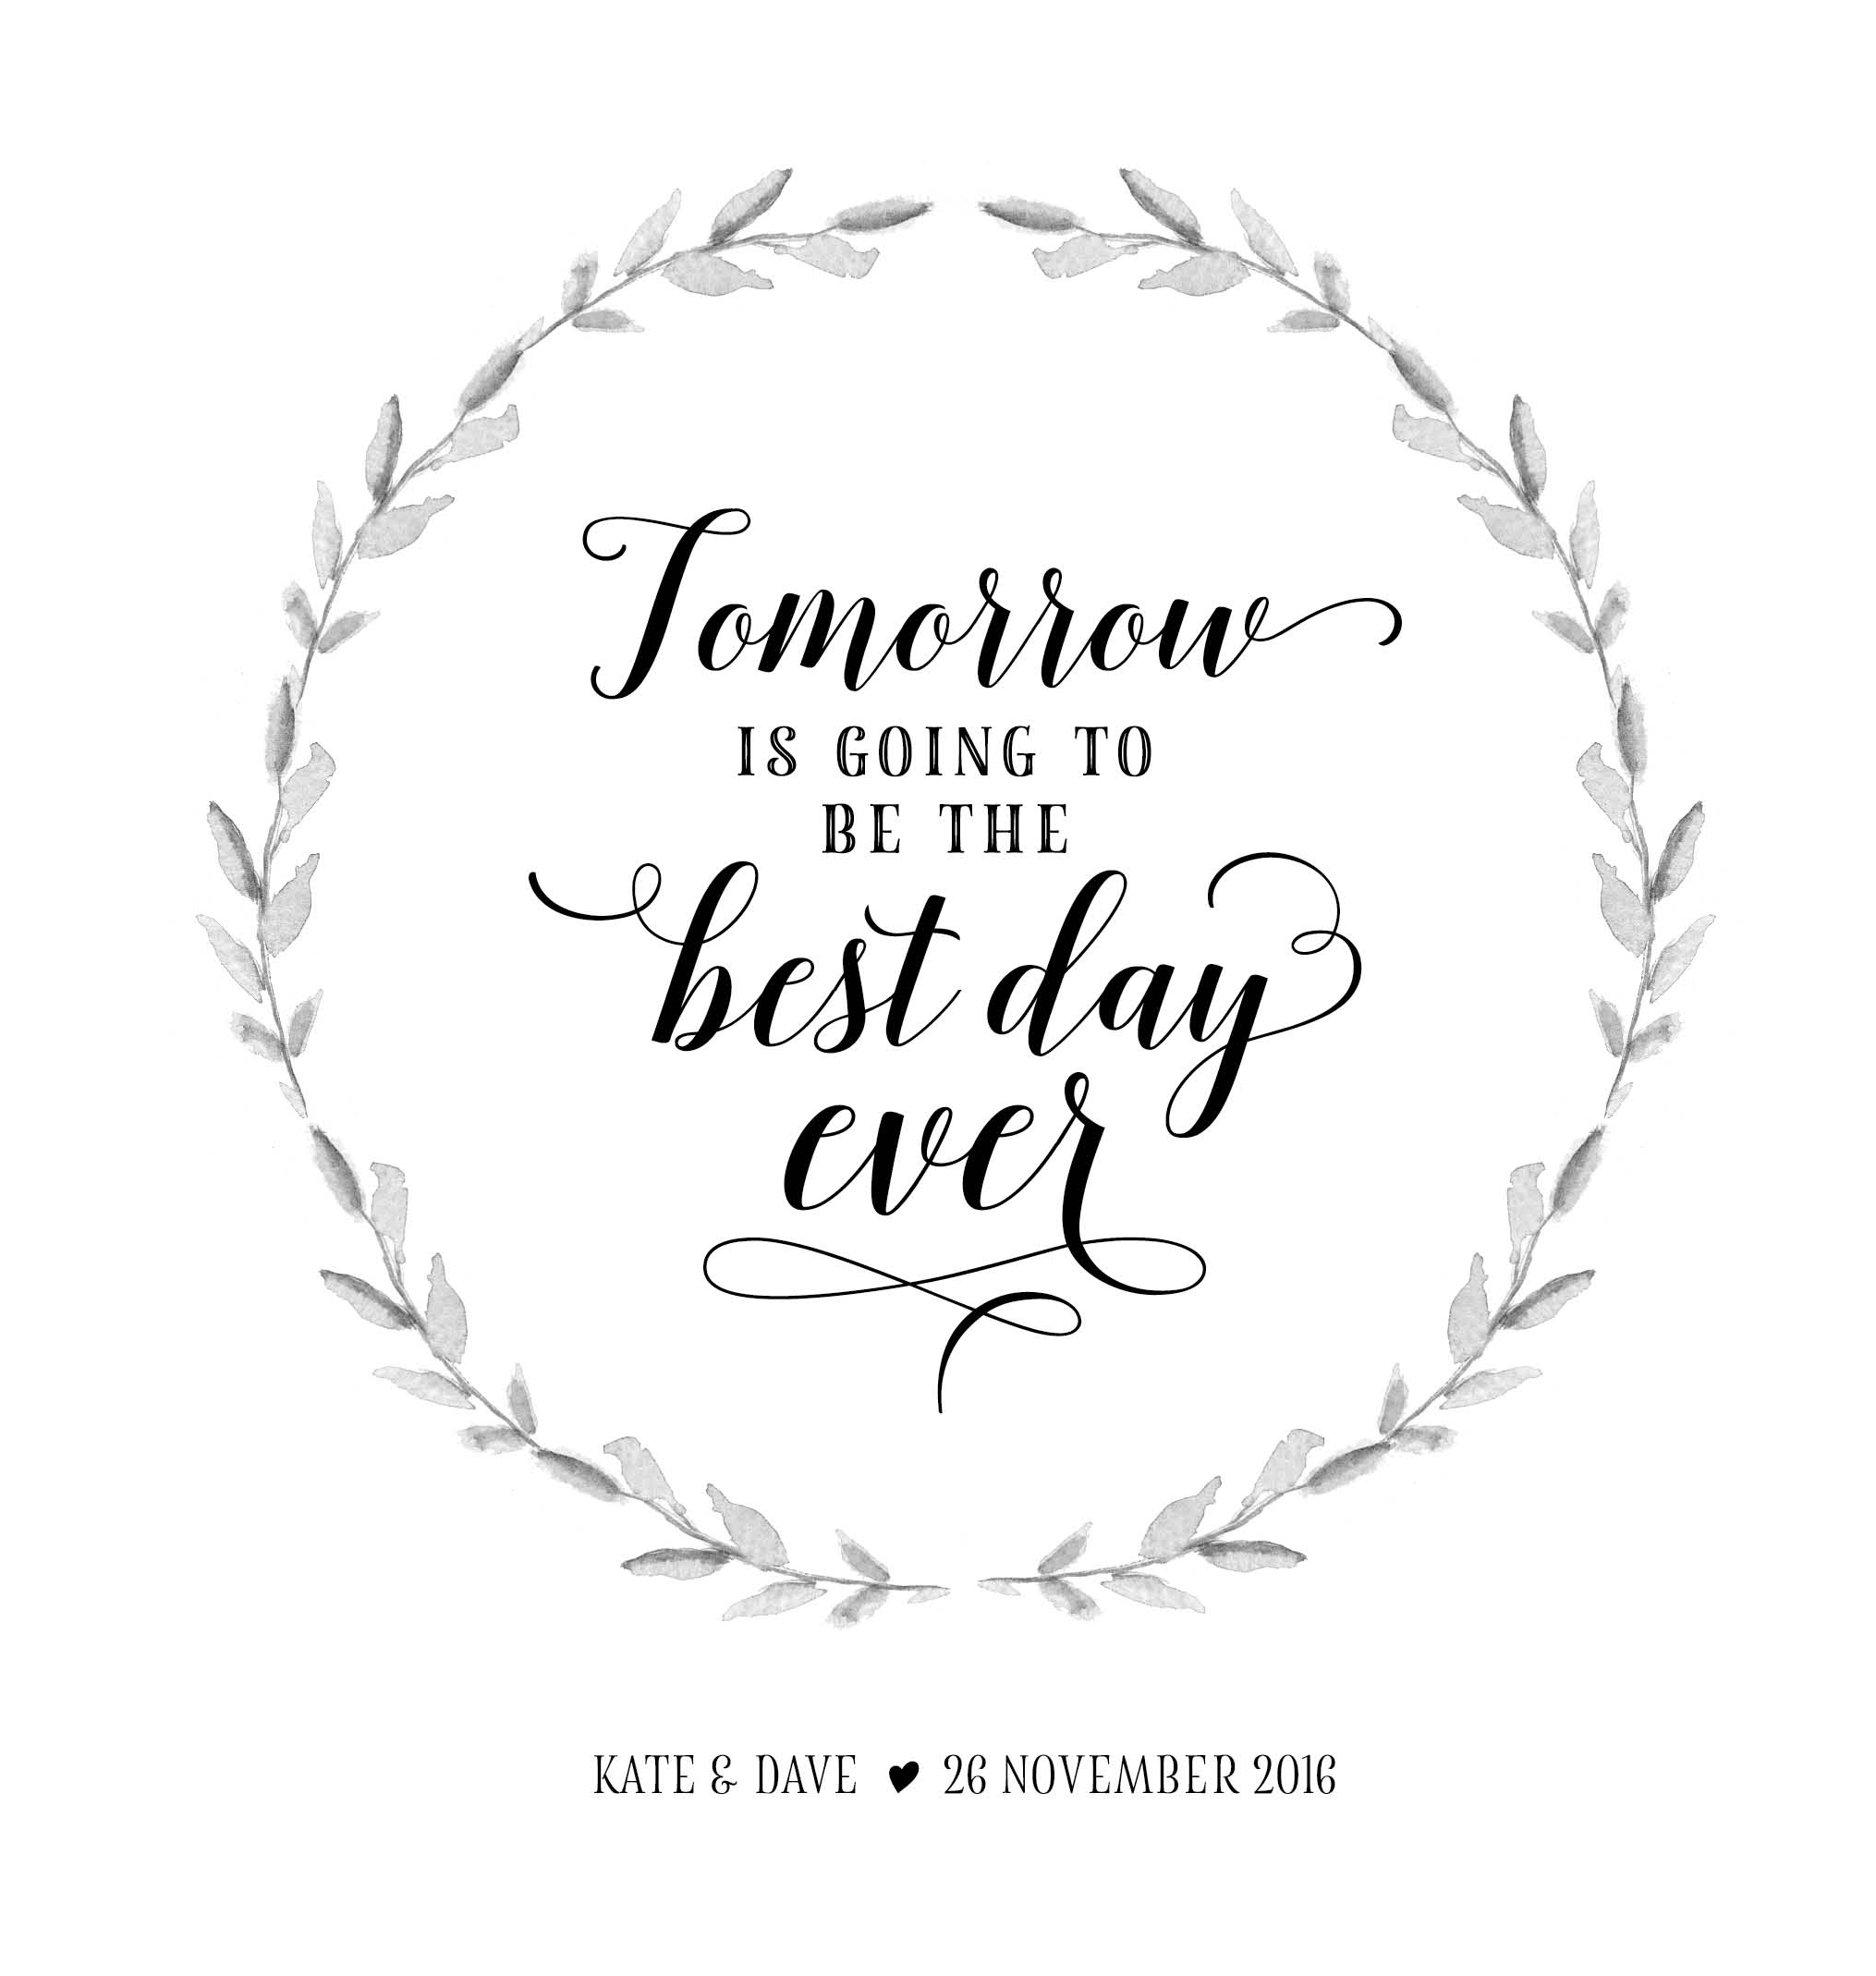 Tomorrow is going to be the best day ever wedding quote